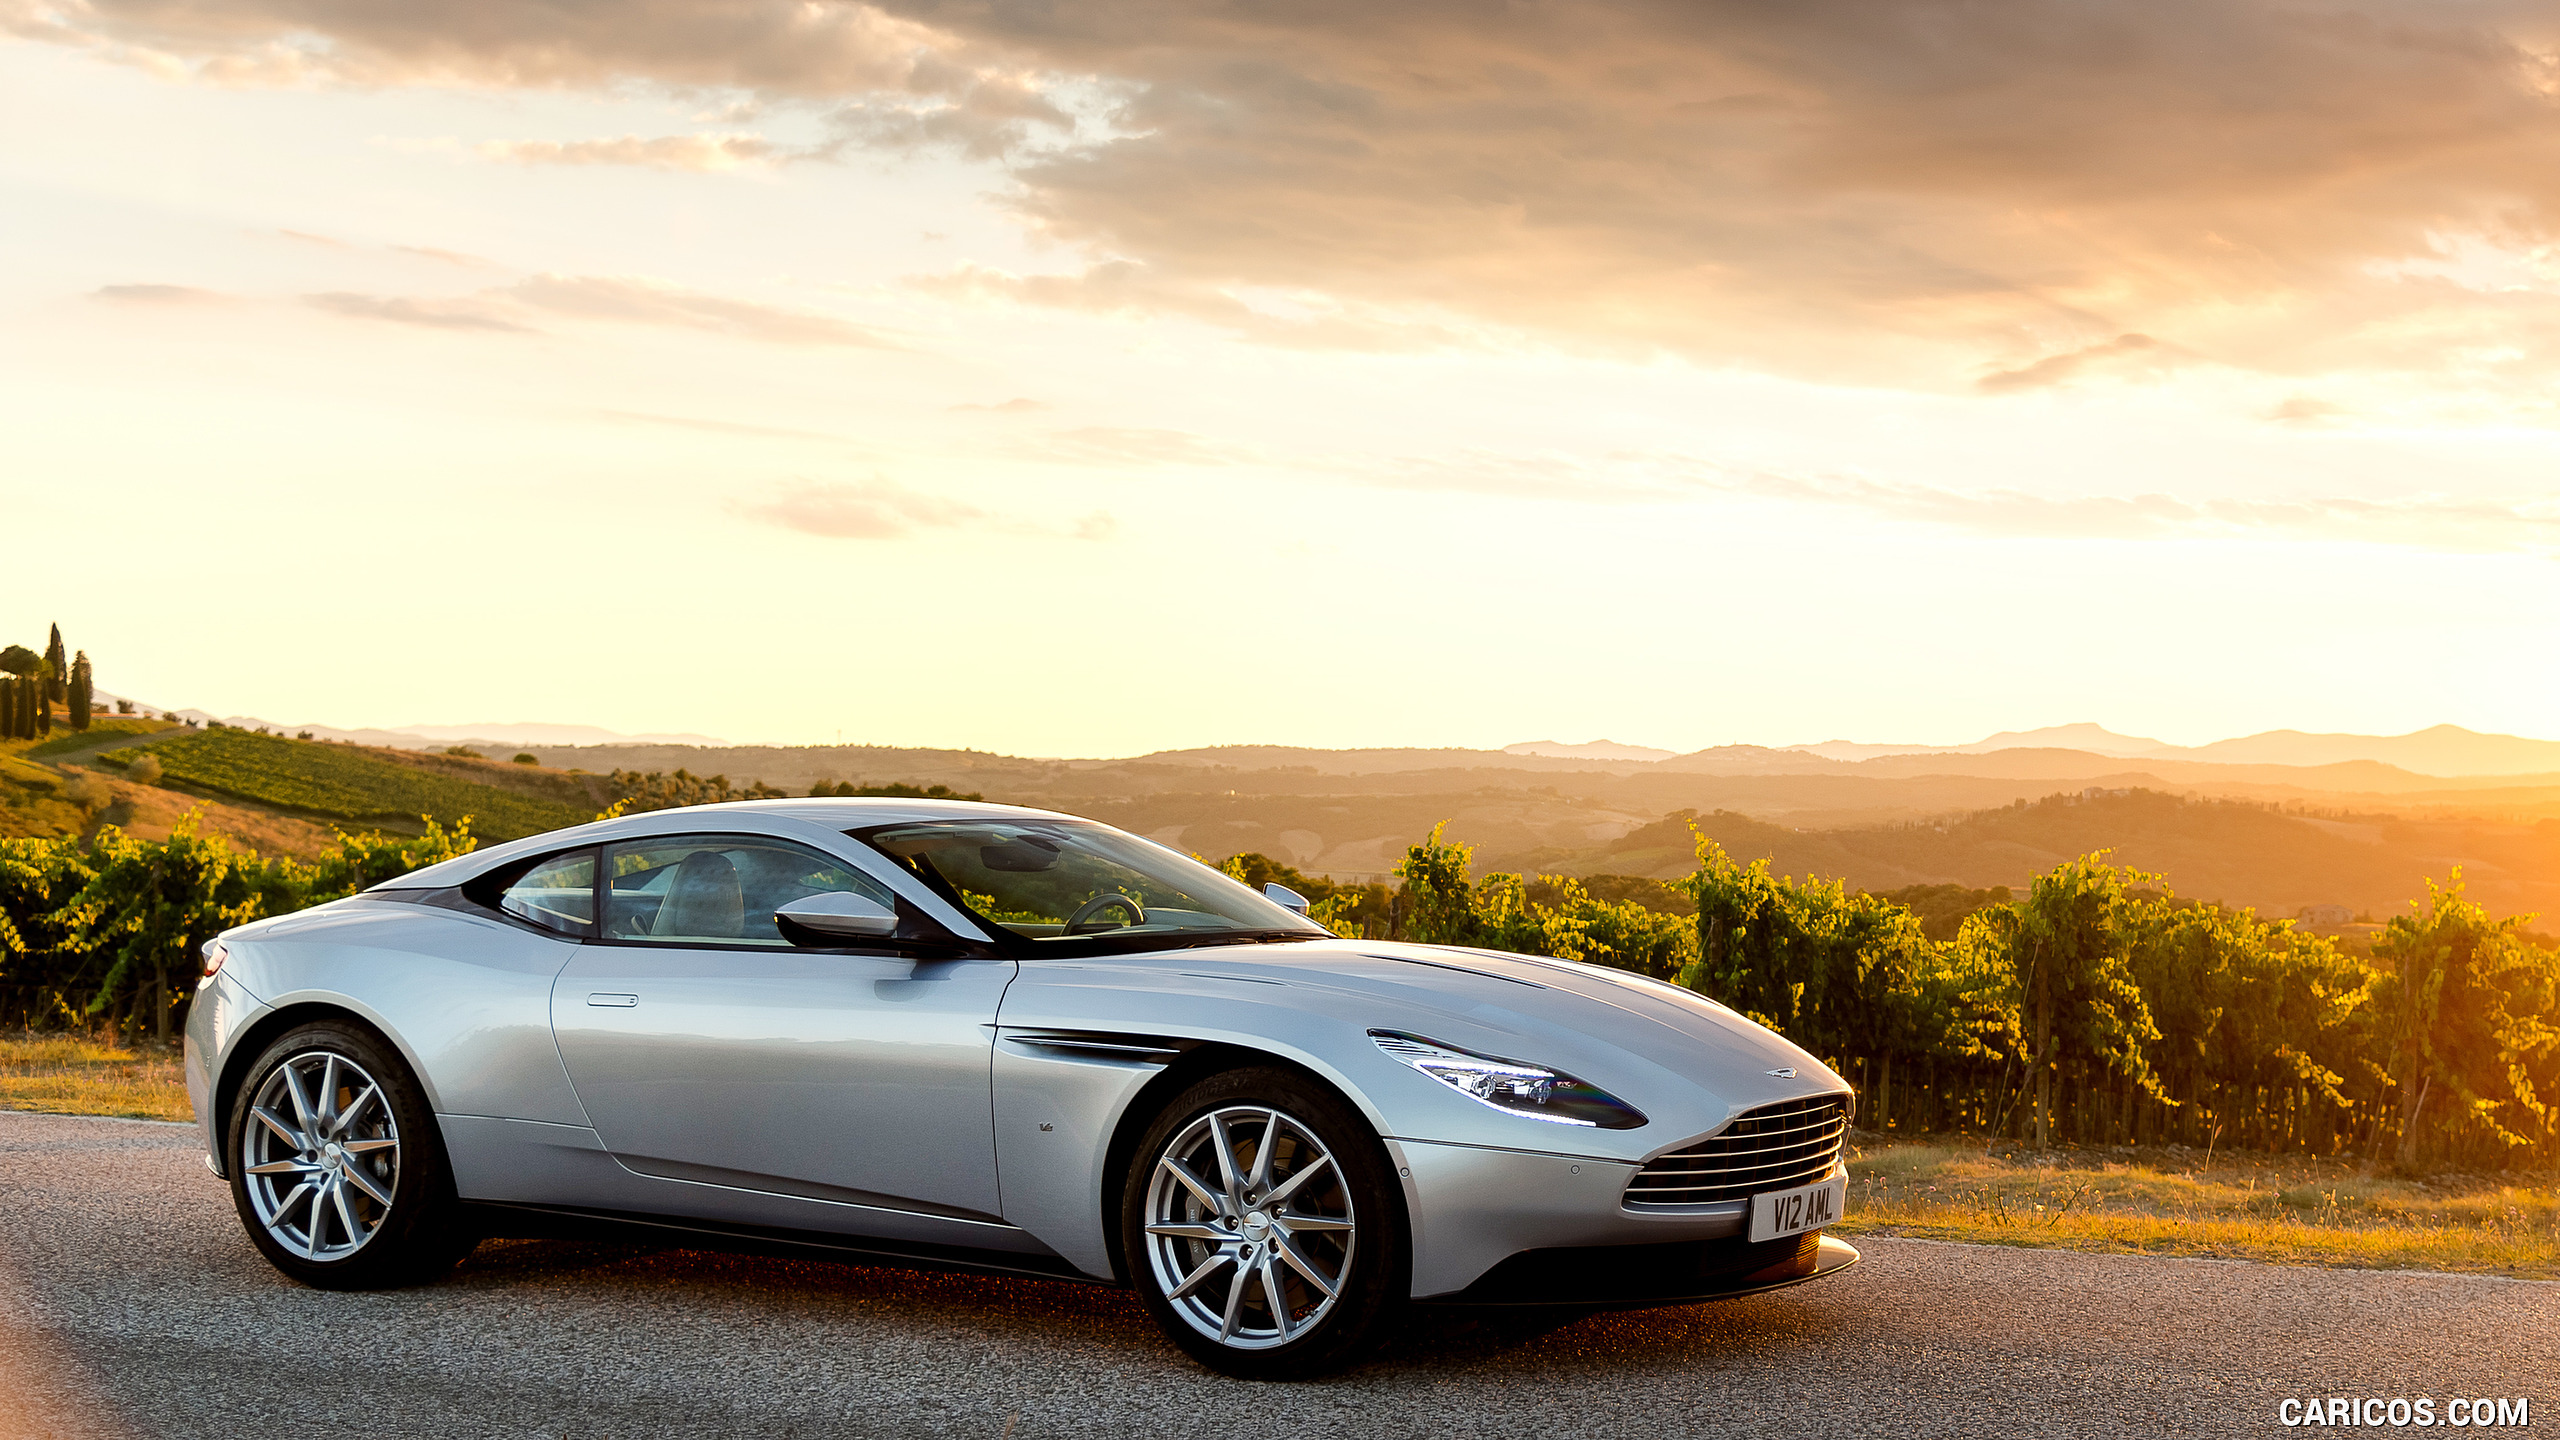 2017 Aston Martin DB11 Lightning Silver   Side HD Wallpaper 59 2560x1440